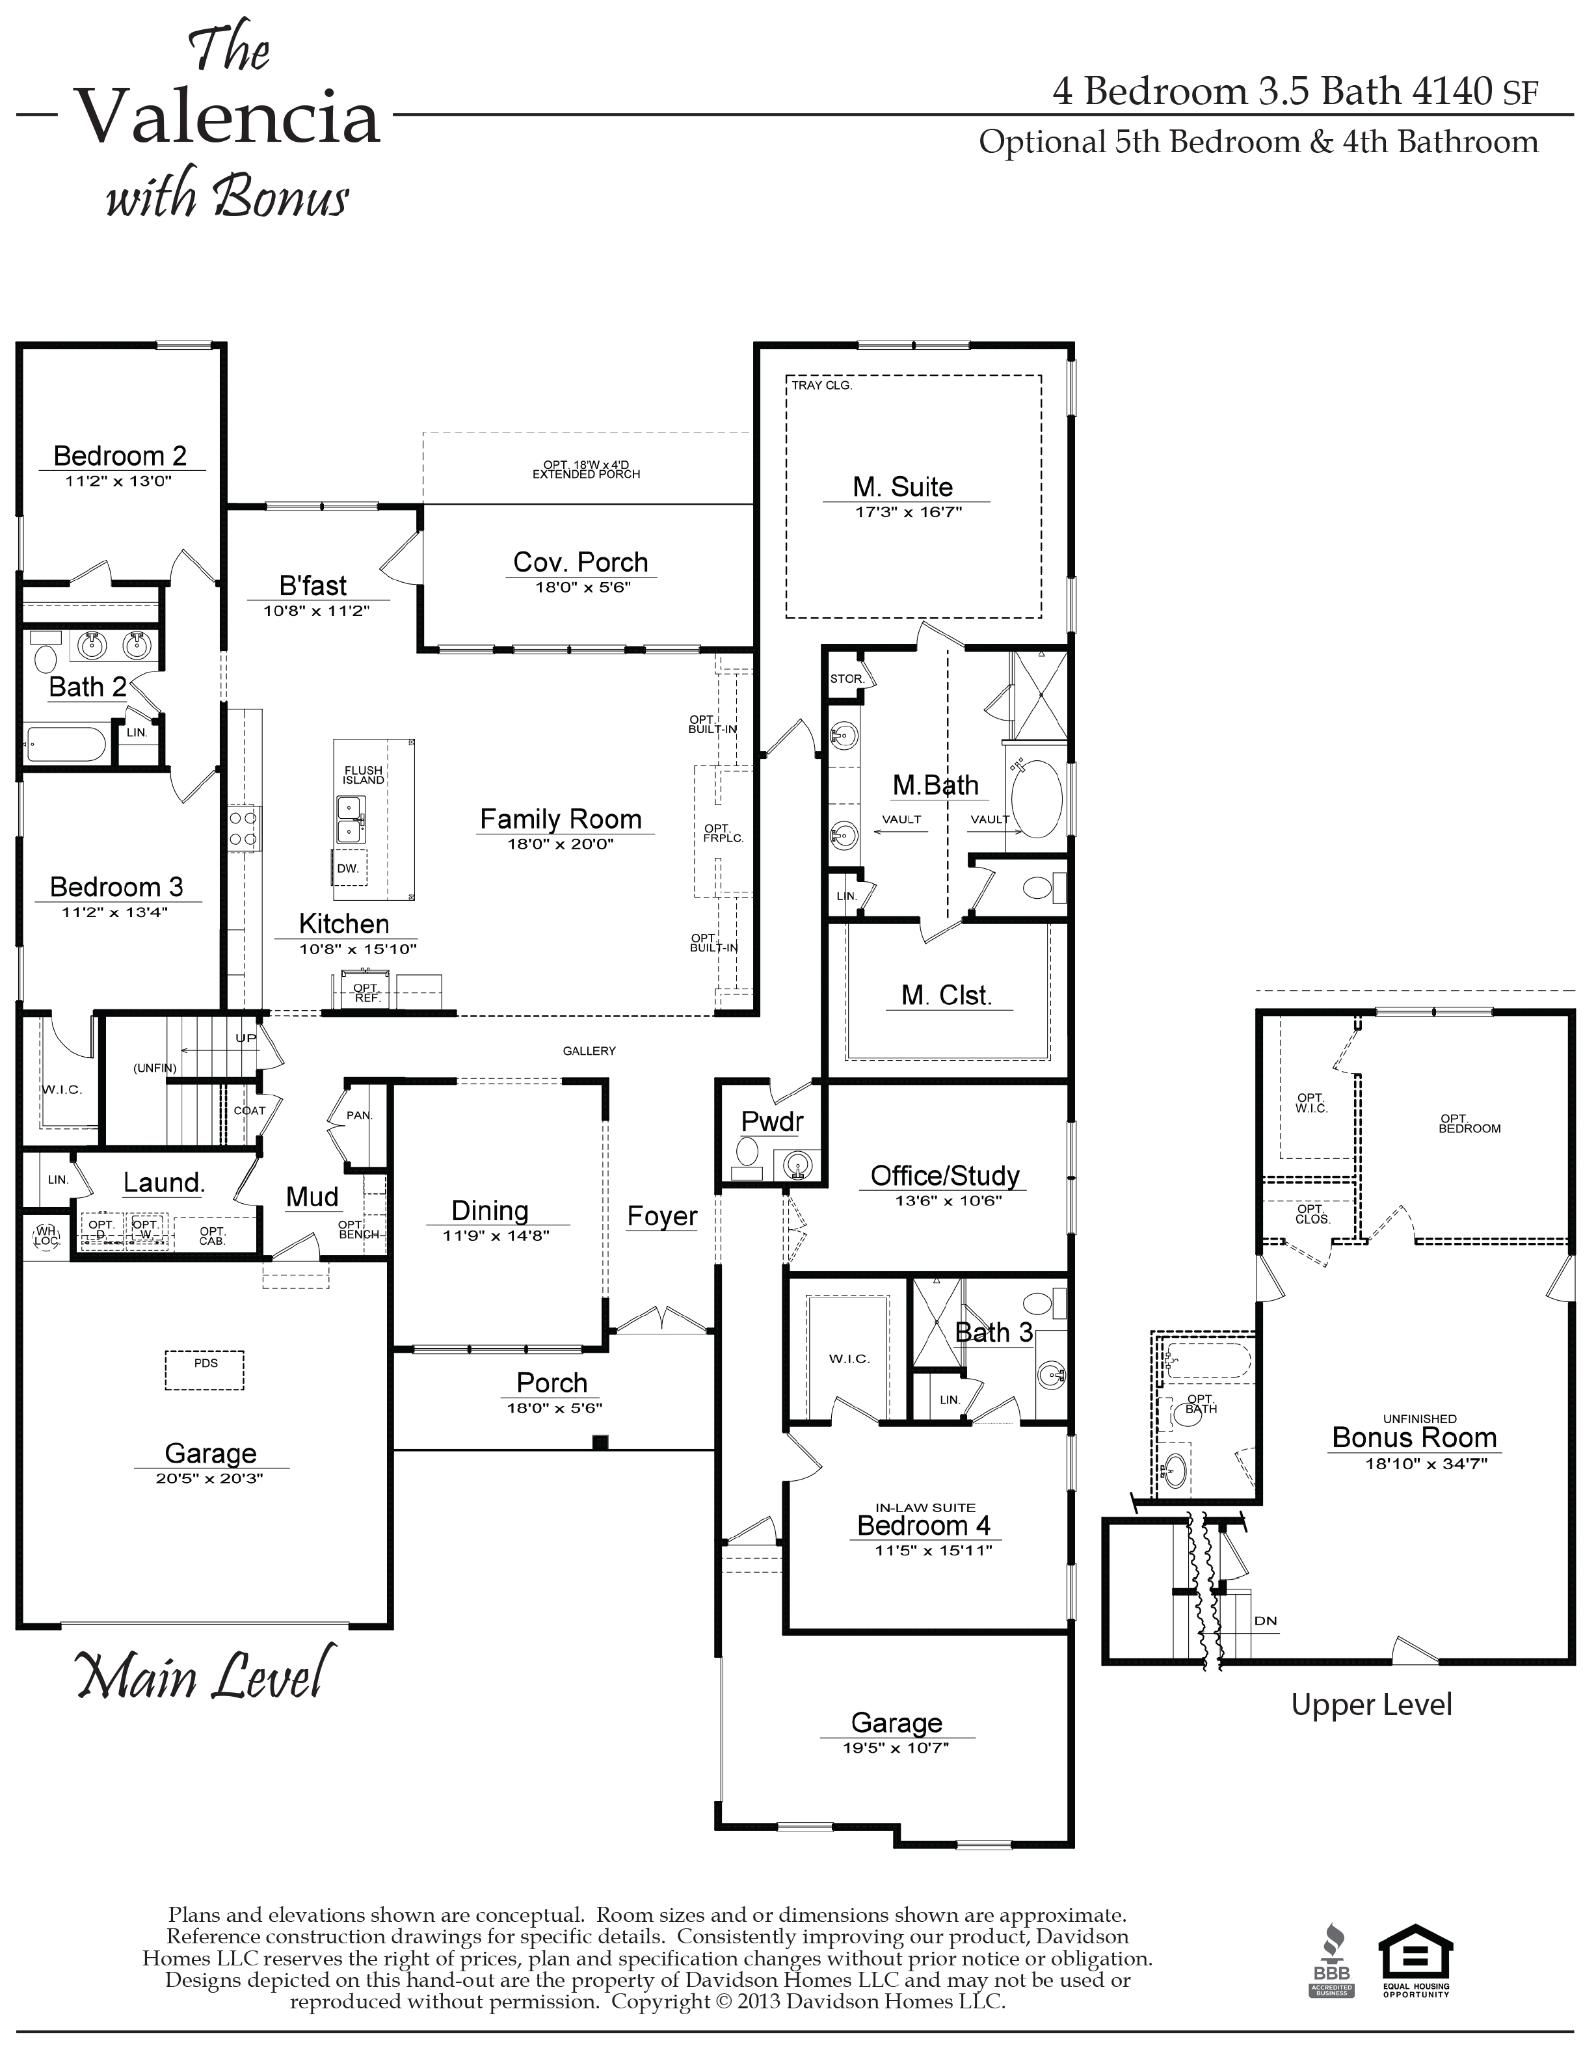 House 10 to 8. Layout and construction